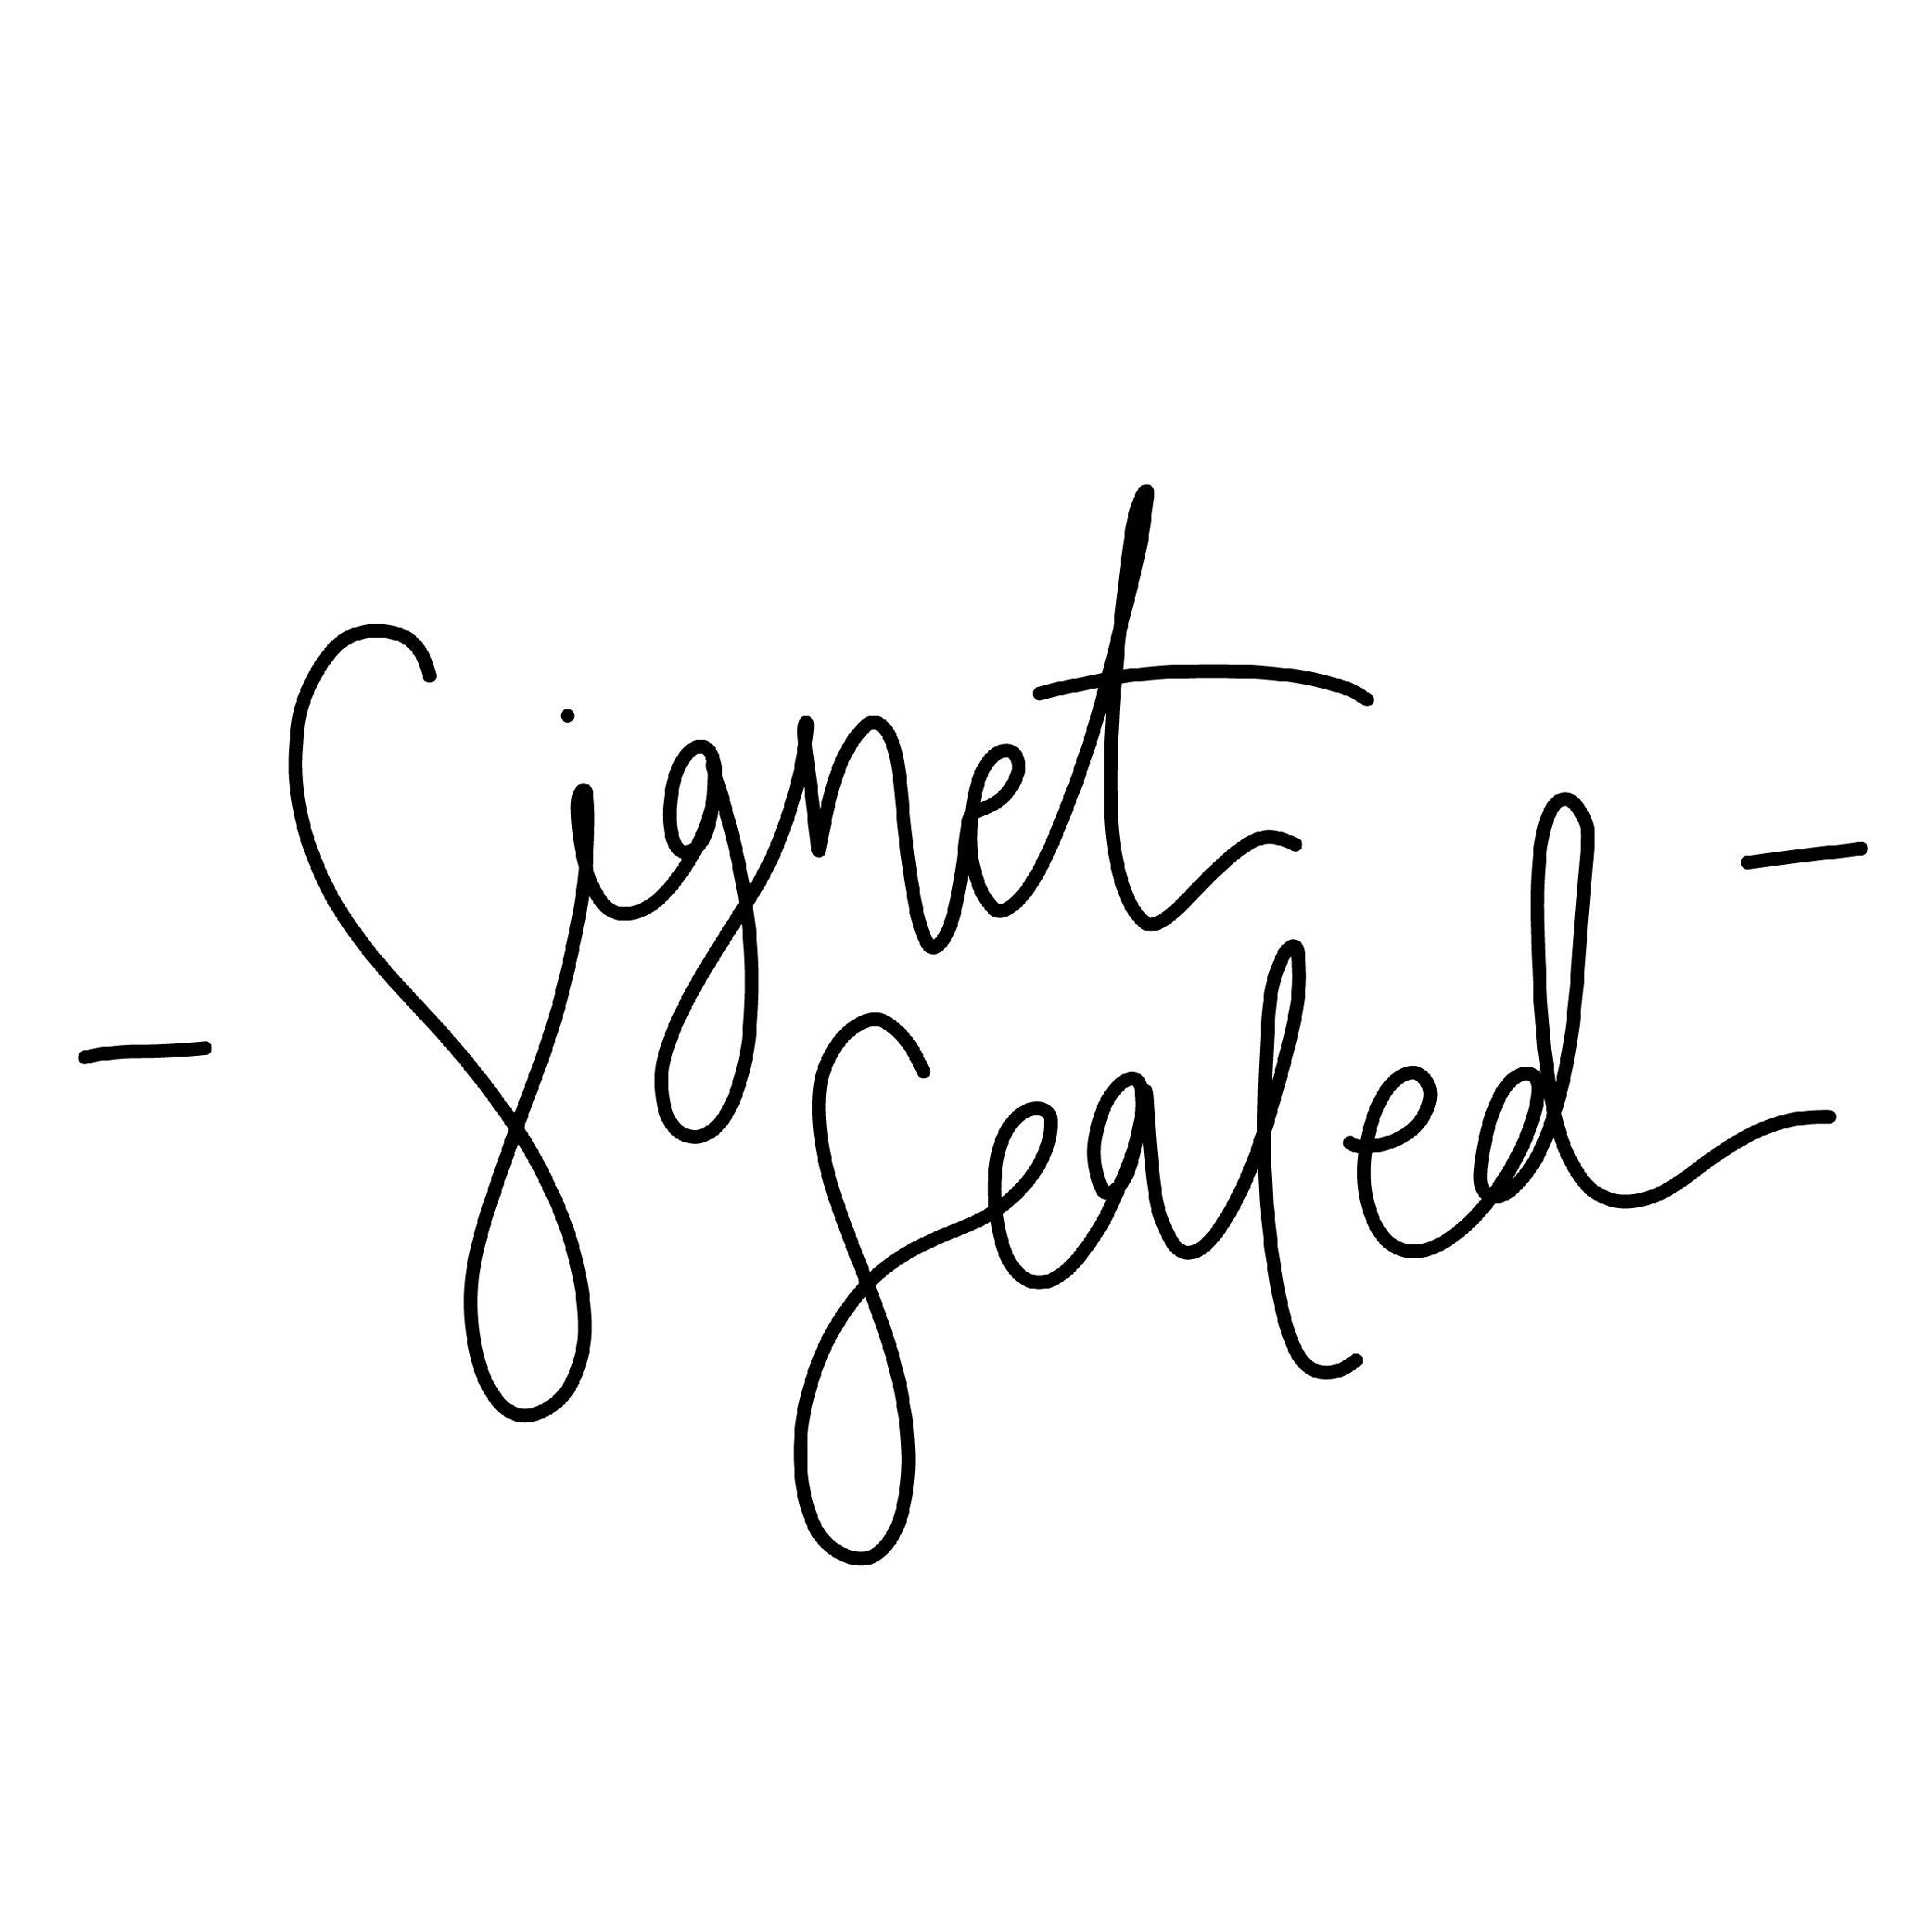 Signet Sealed Illustration por SignetSealed en Etsy